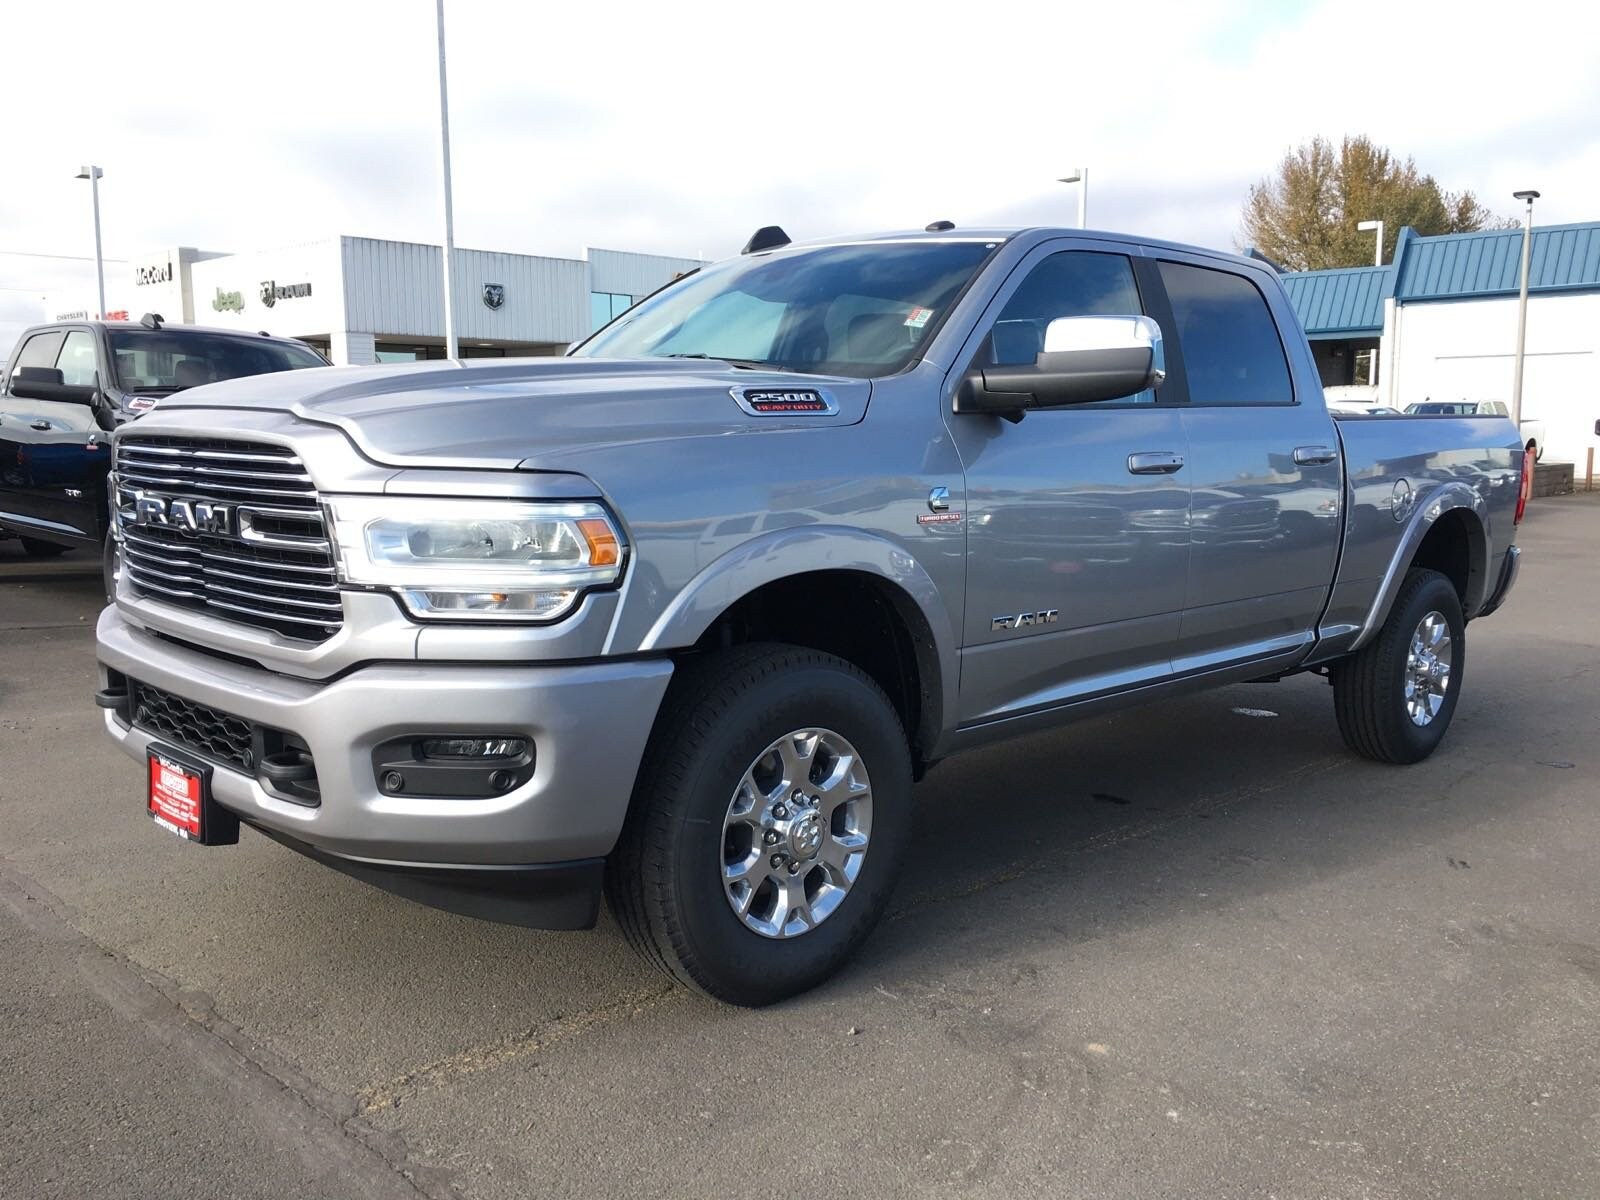 2019 Ram 2500 Crew Cab 4x4, Pickup #R1923 - photo 1